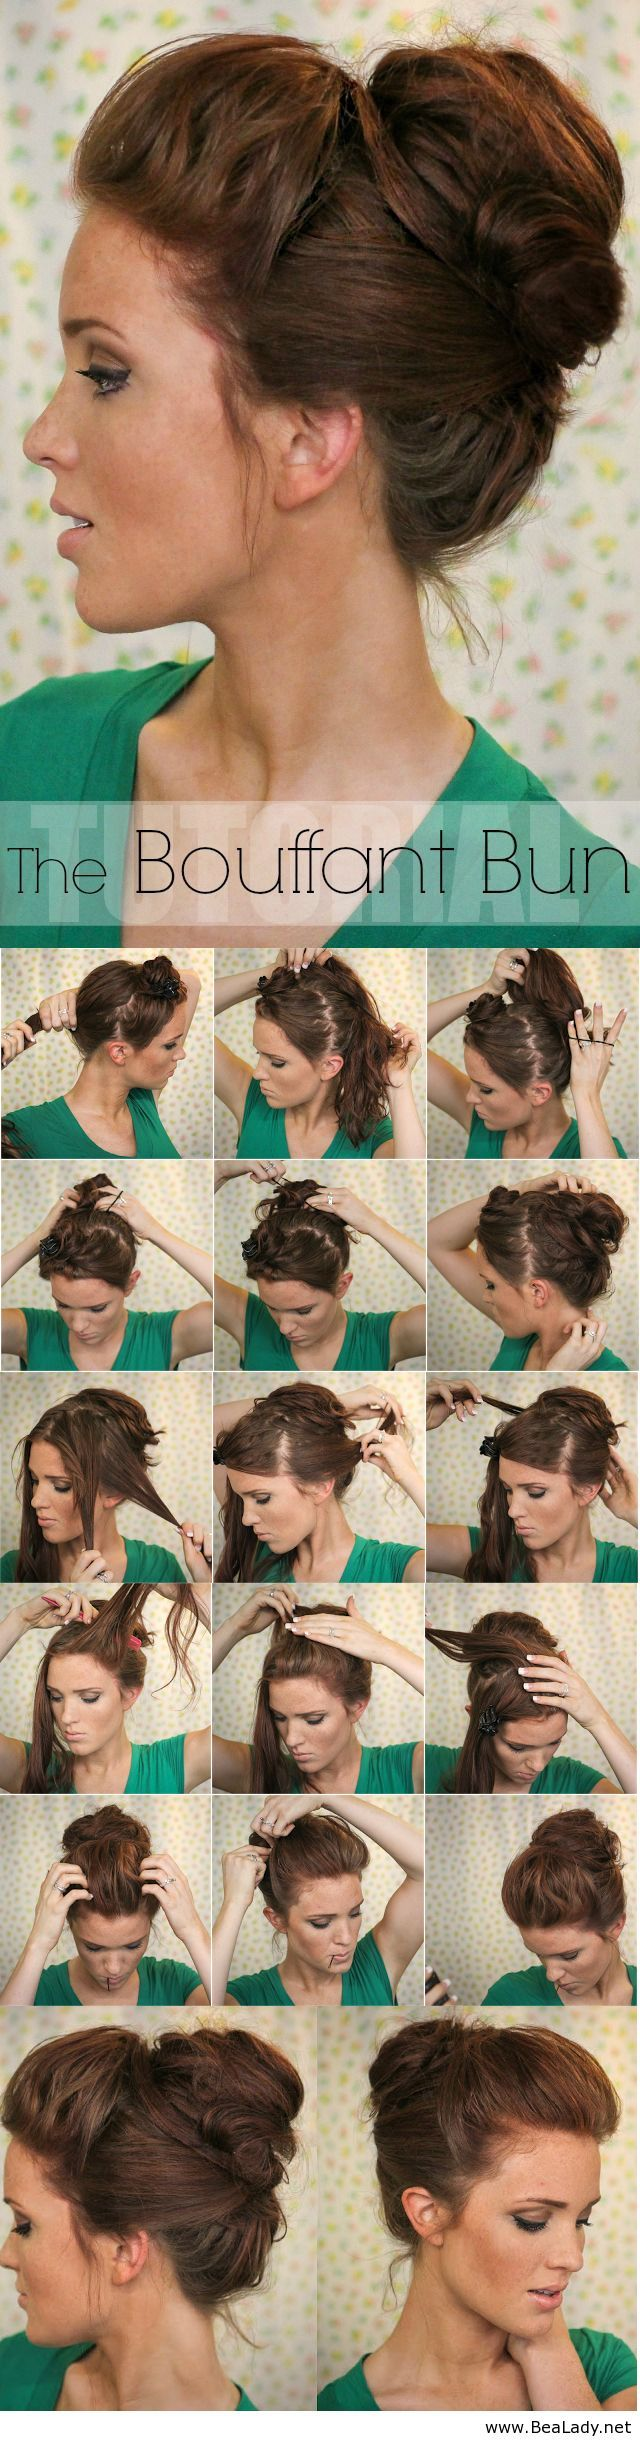 Super Easy Knotted Bun Updo and Simple Bun Hairstyle Tutorials - Even though I'm still confused as to how she did this! I love the look